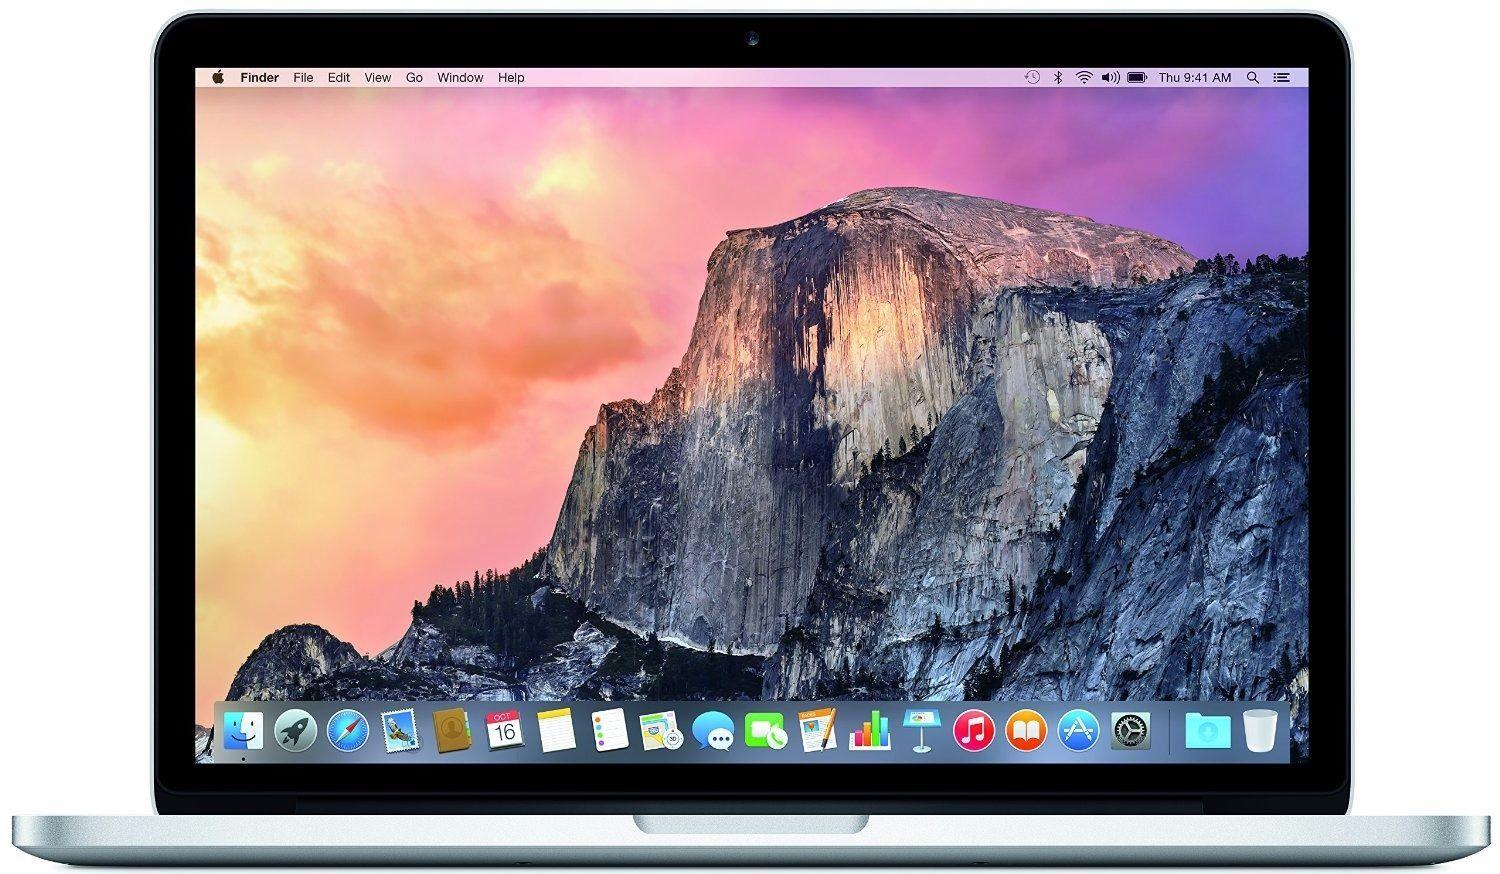 $1499.99 Apple MacBook Pro MF841LL/A 13.3-Inch Laptop with Retina Display (512 GB)